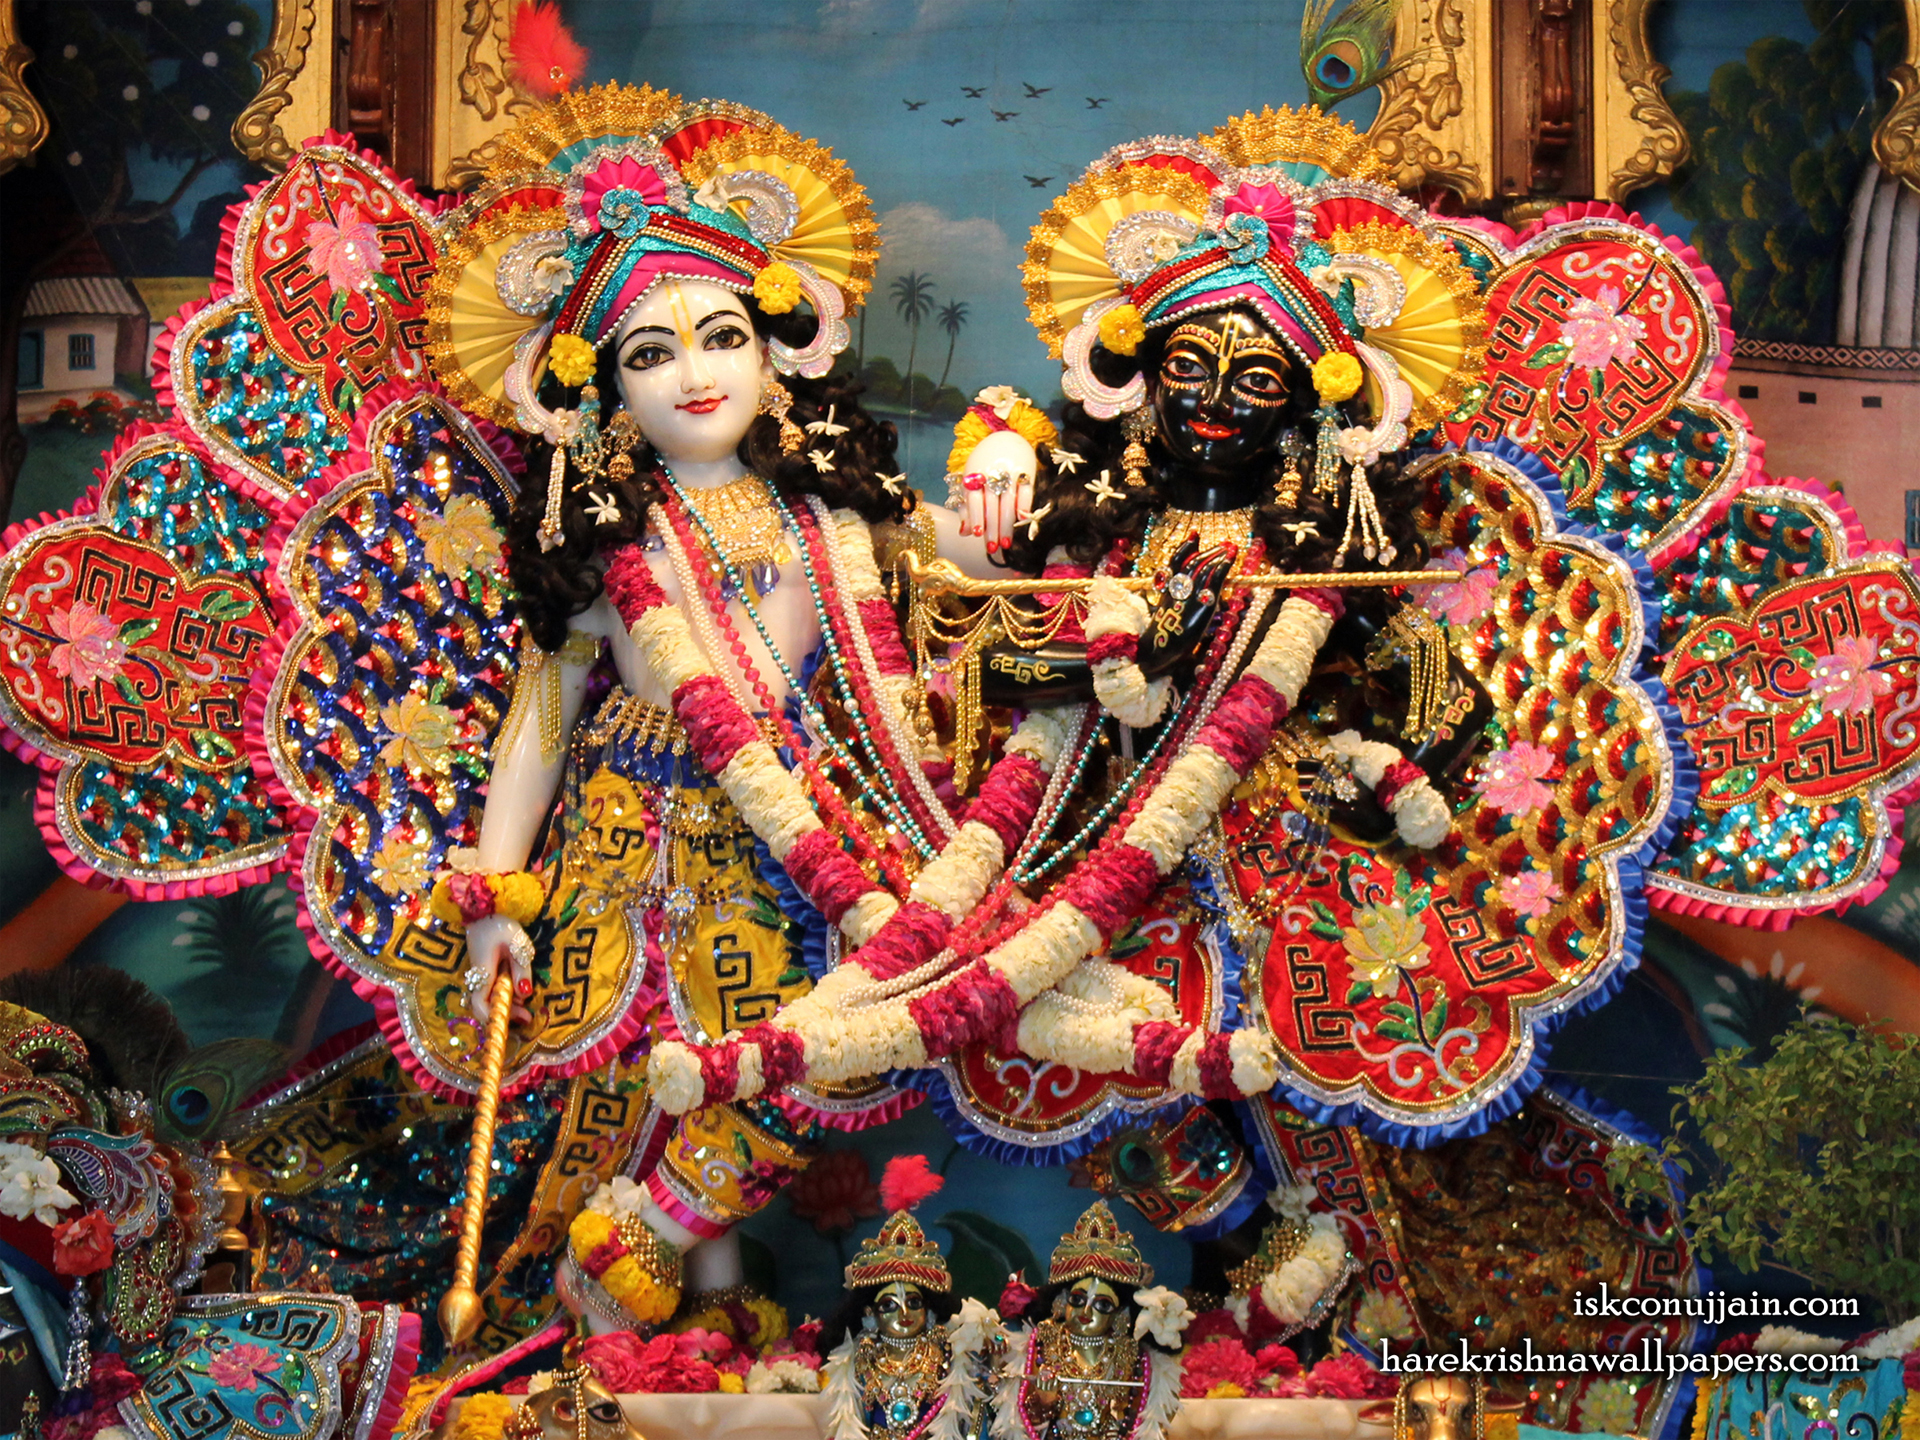 Sri Sri Krishna Balaram Wallpaper (004) Size 1920x1440 Download